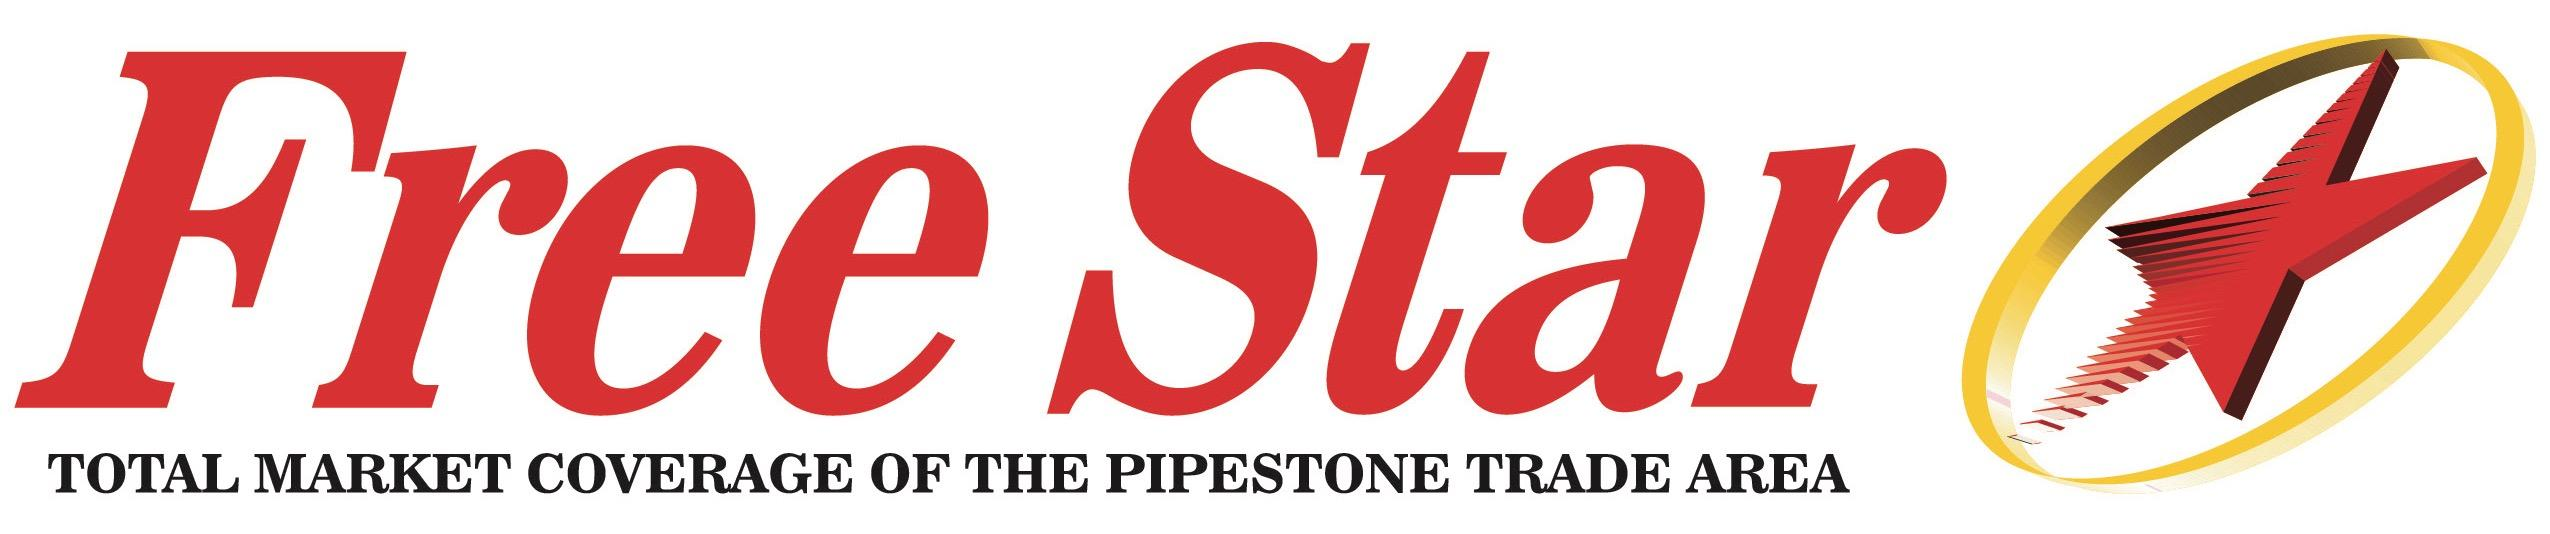 The Free Star logo